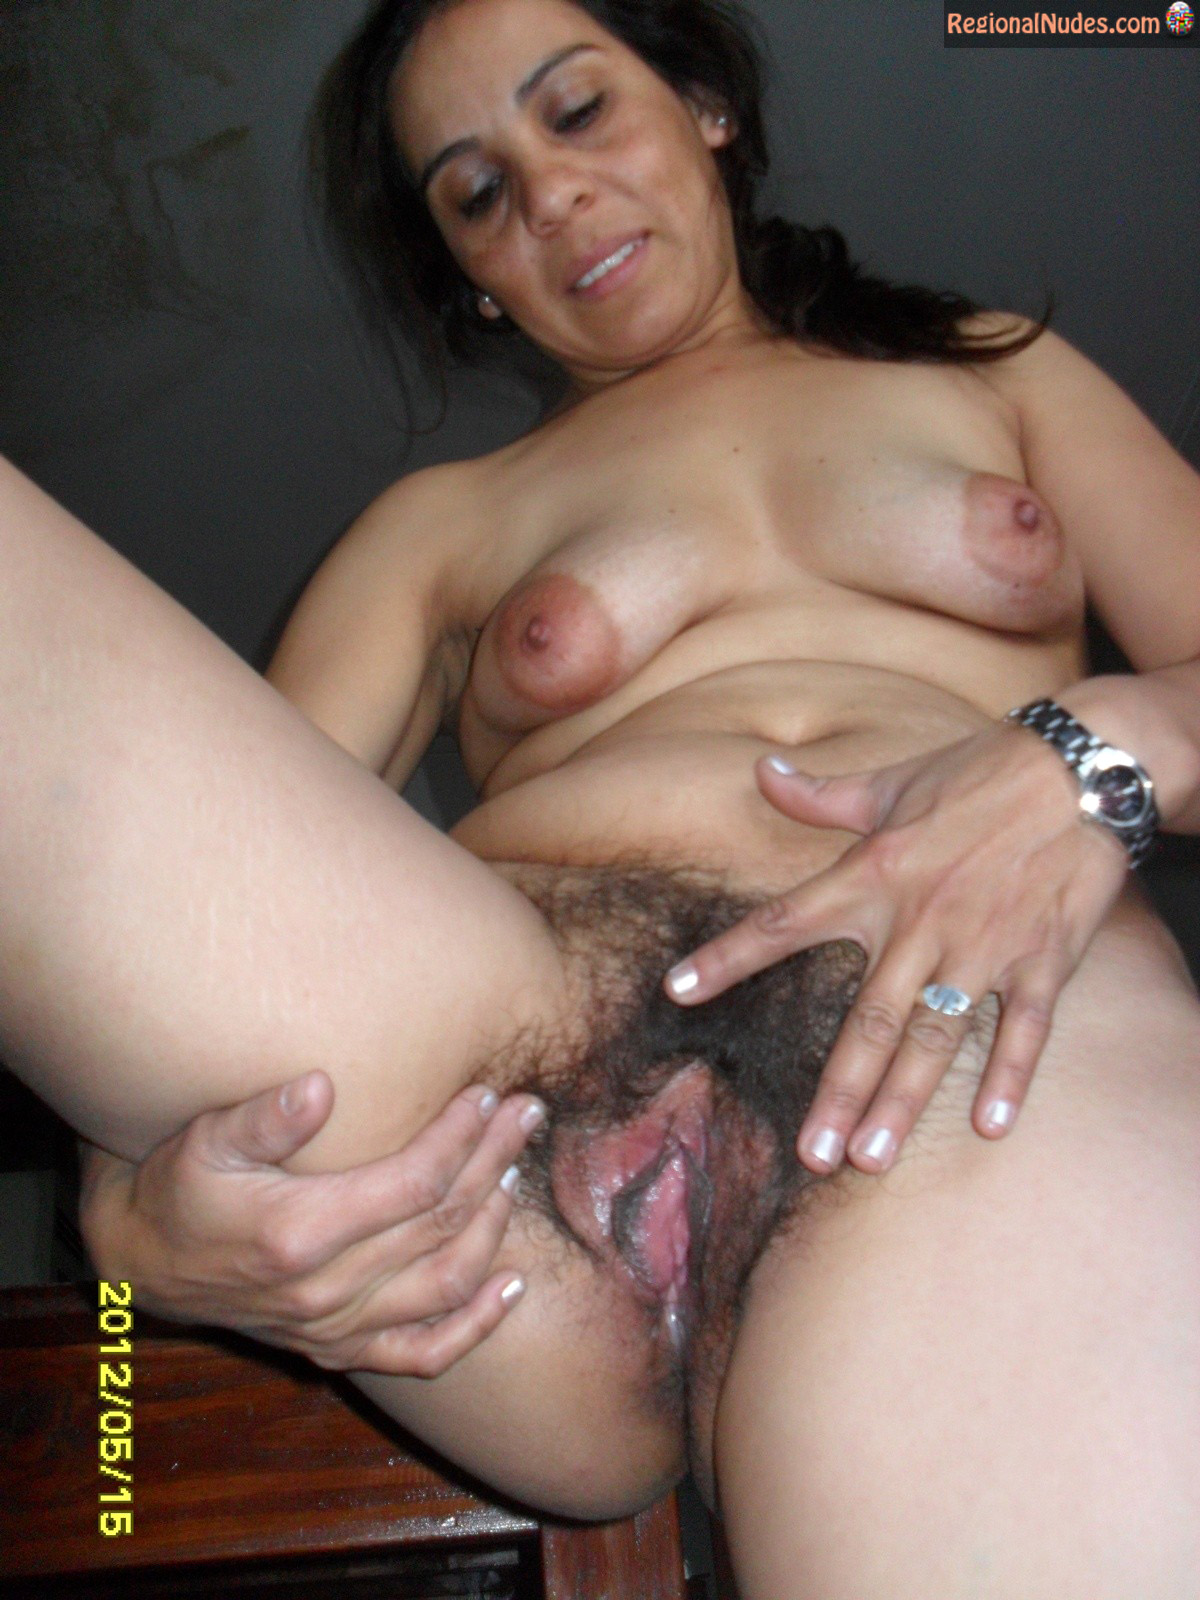 Nude Latina Slut Mexican Wife Spreading Cunt  Regional -3558